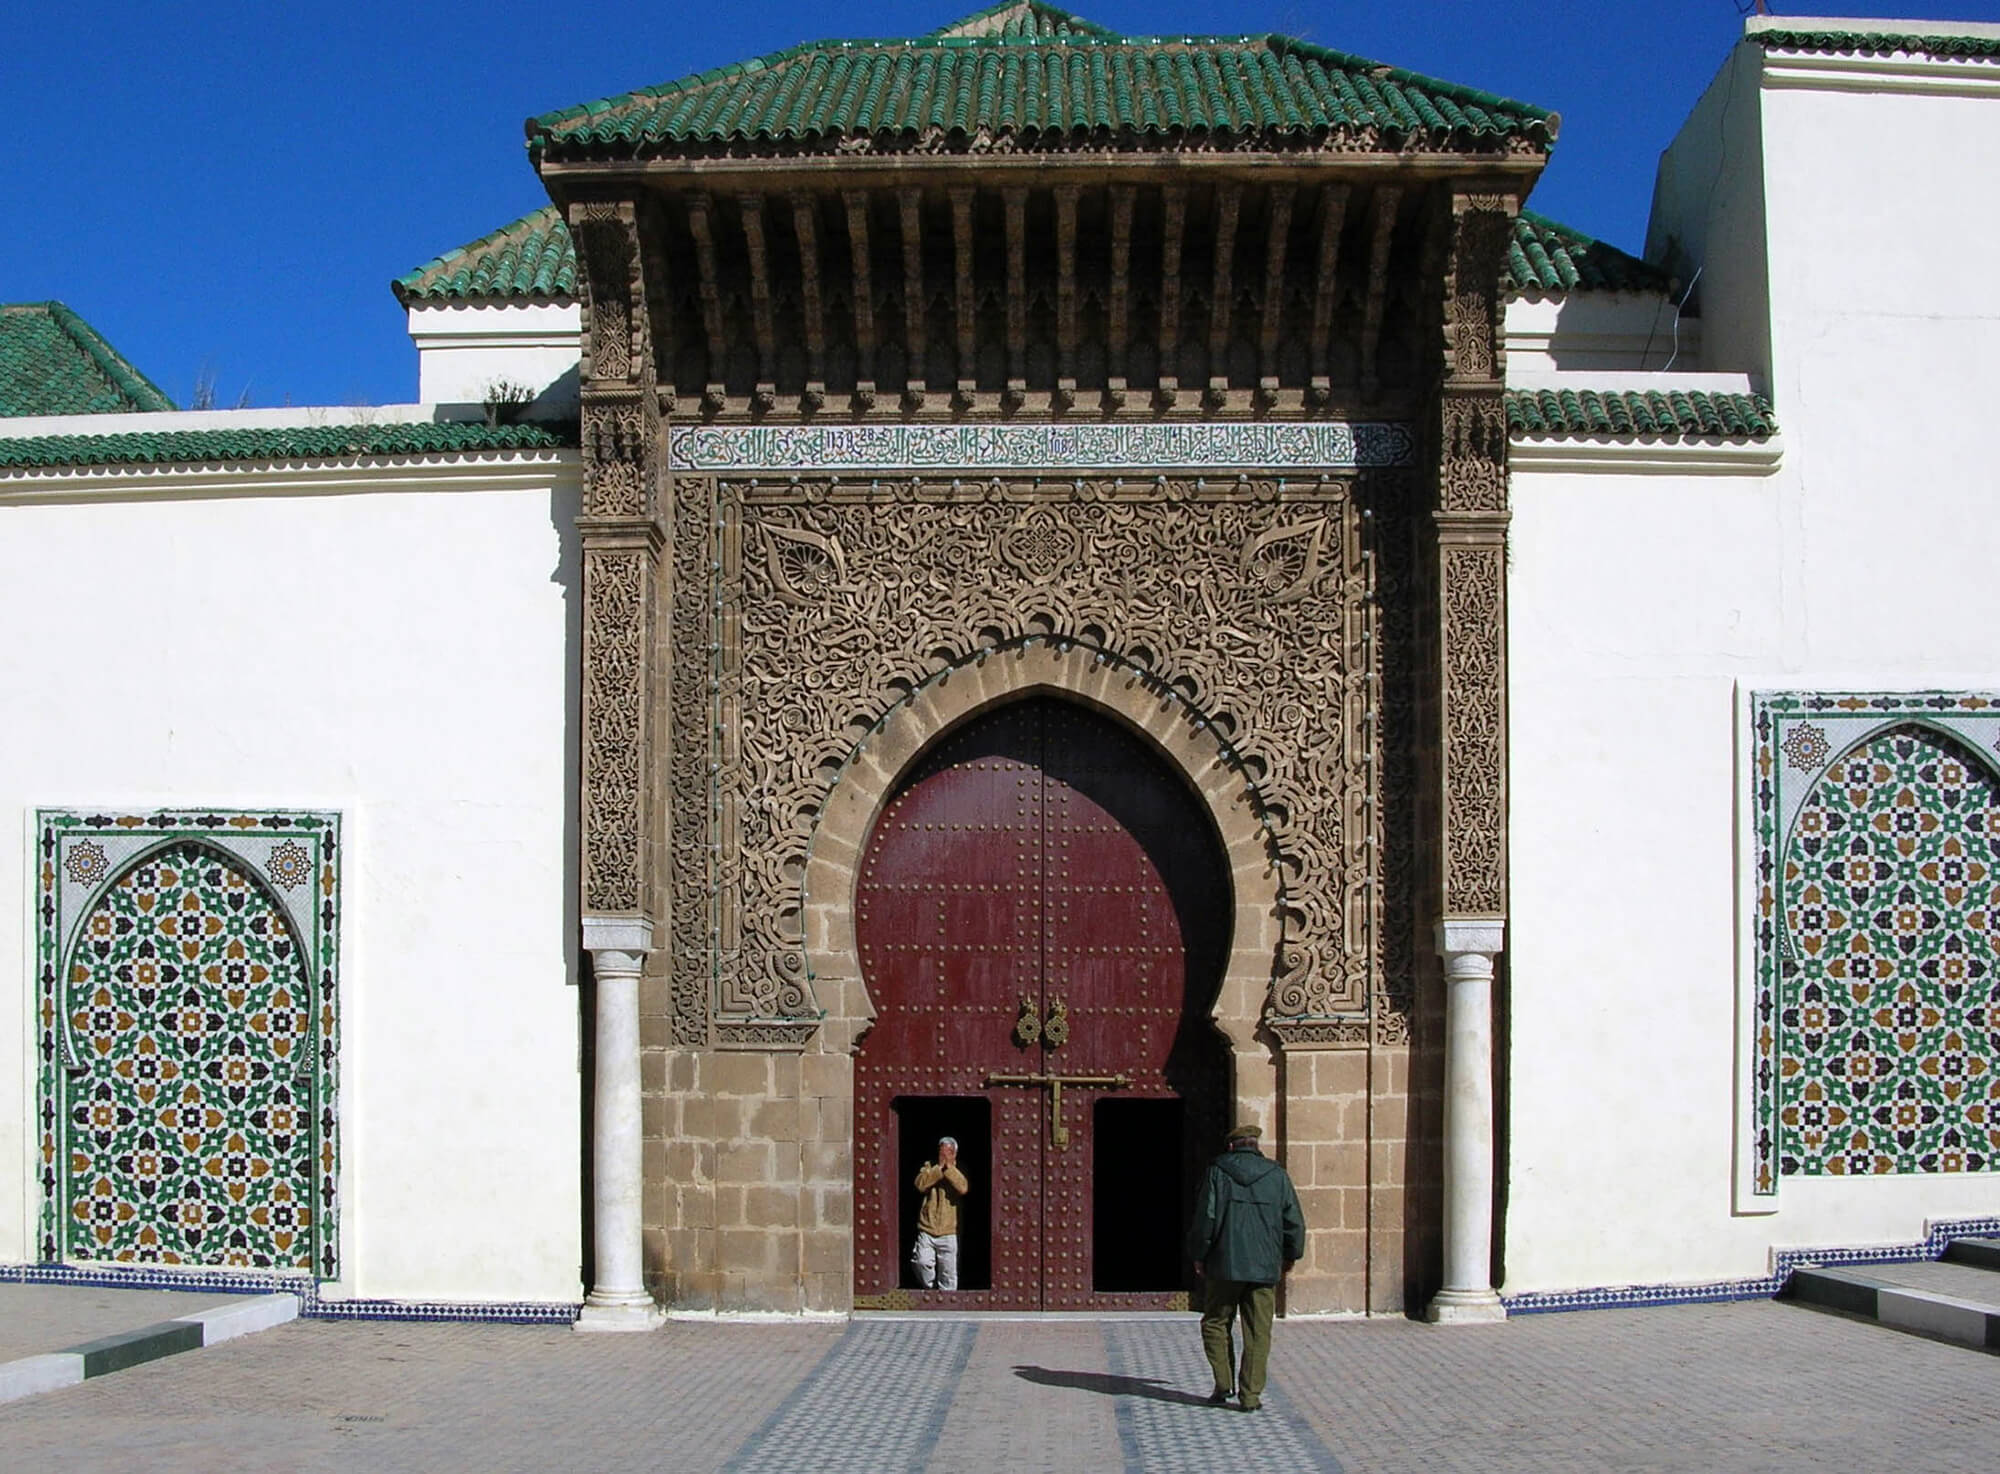 Sahara Desert Tour - What to See and Do in Meknes, one of Morocco's Grandest Ancient Cities - Mausoleum of Moulay Ismail